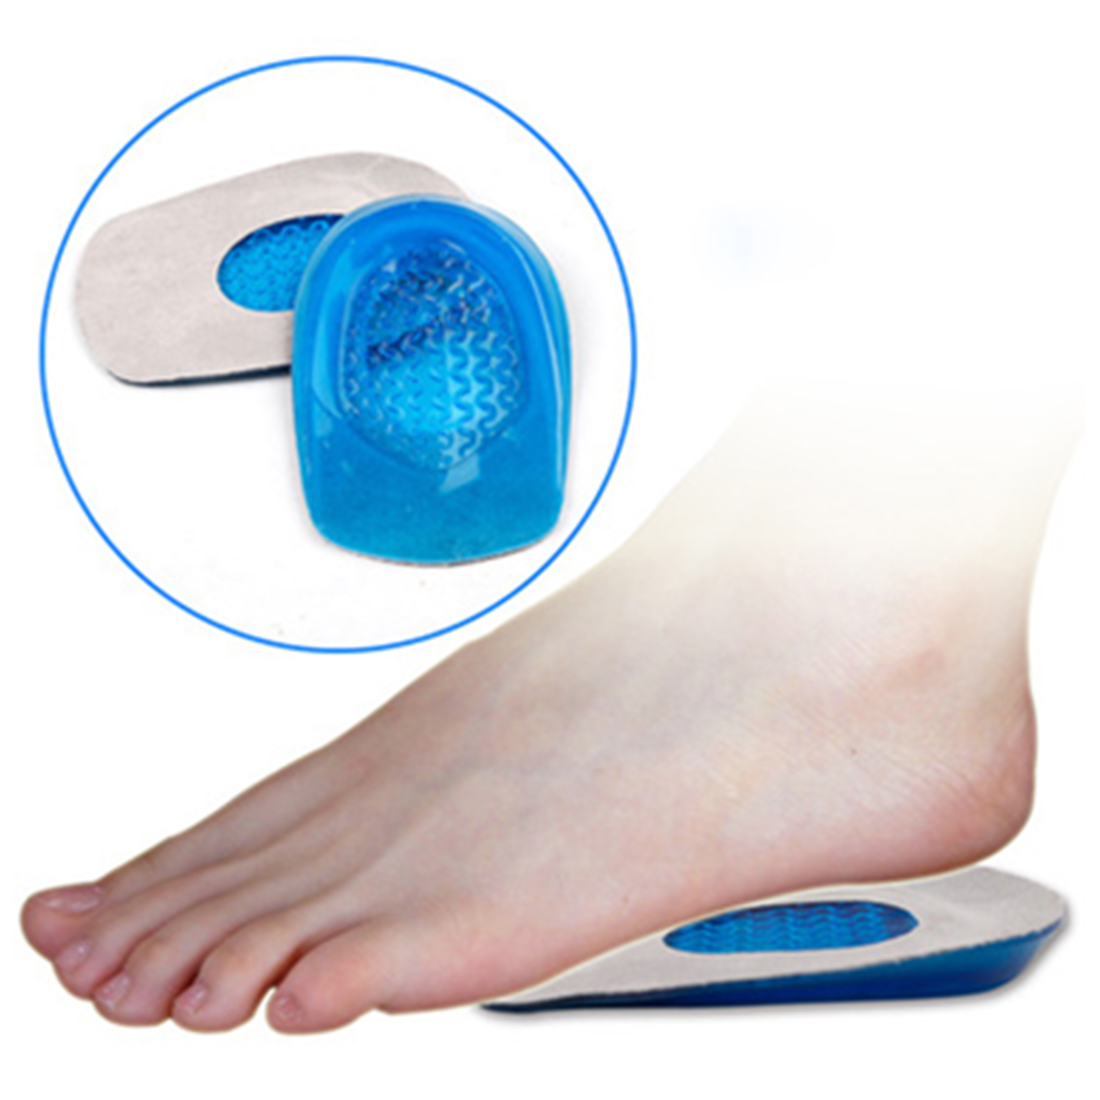 Blue Soft Silicone with Cloth Feet Cushion Heel Support Insert Pad Comfy Orthotic Shoes Insole Heelpiece Foot Care Tool 1 Pair